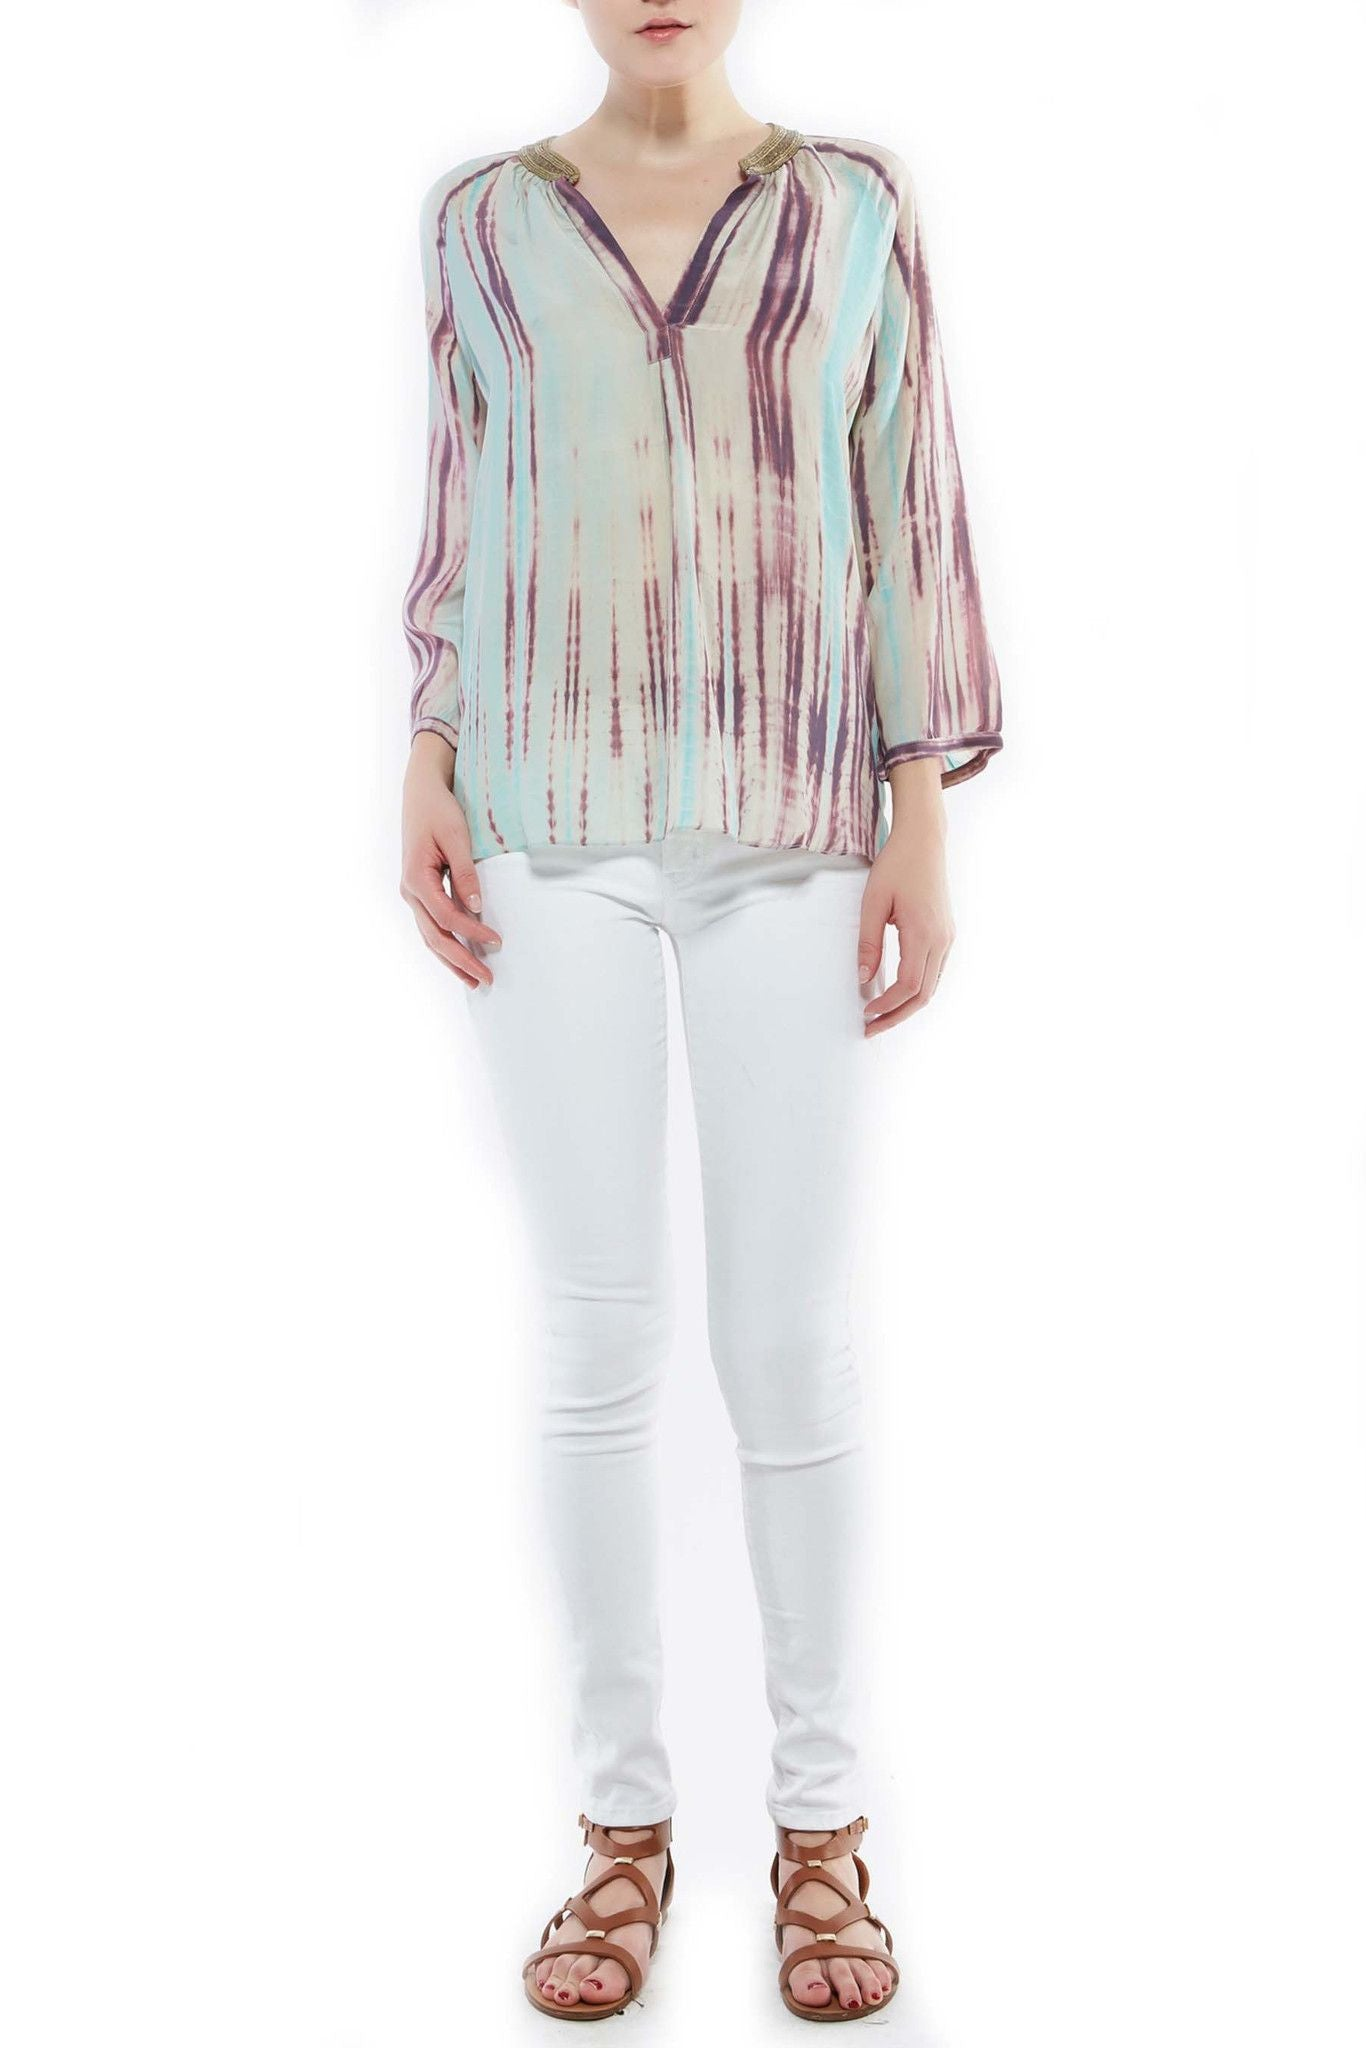 T203E GREYSON QUARTER BUBBLE SLEEVE W/ EMBROIDERY WATERFALL